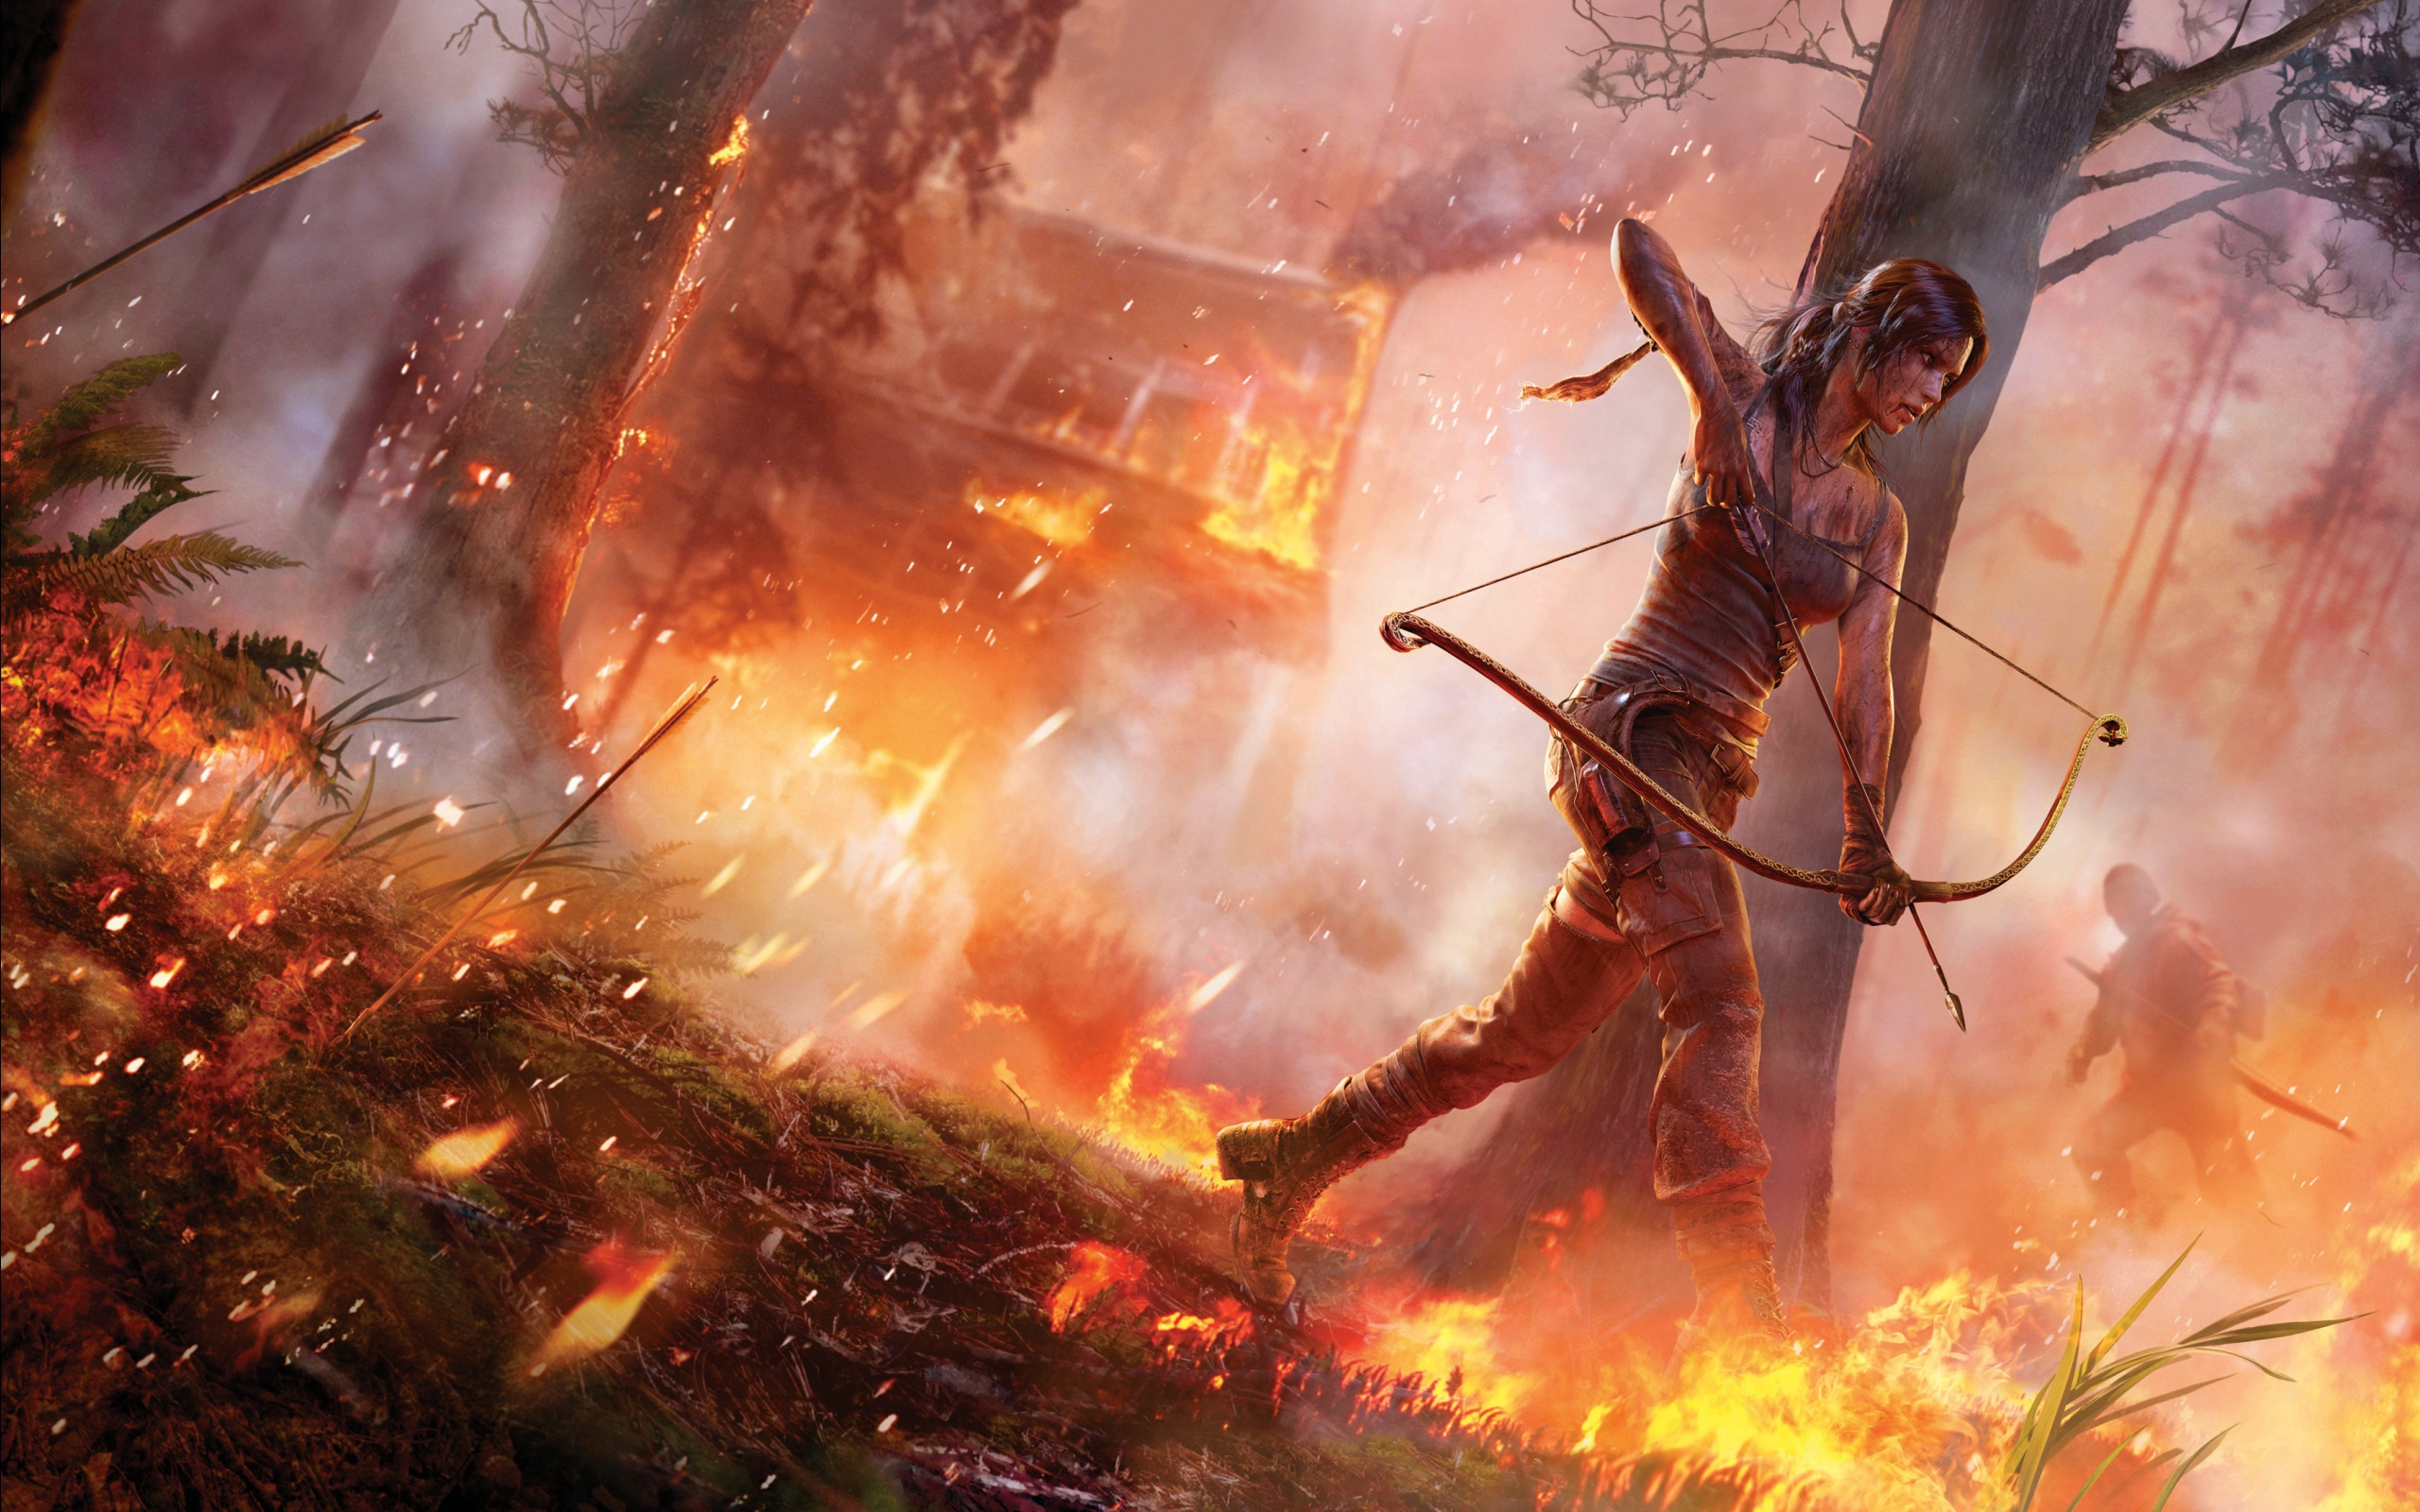 tomb raider 2013 gameplay pc download free